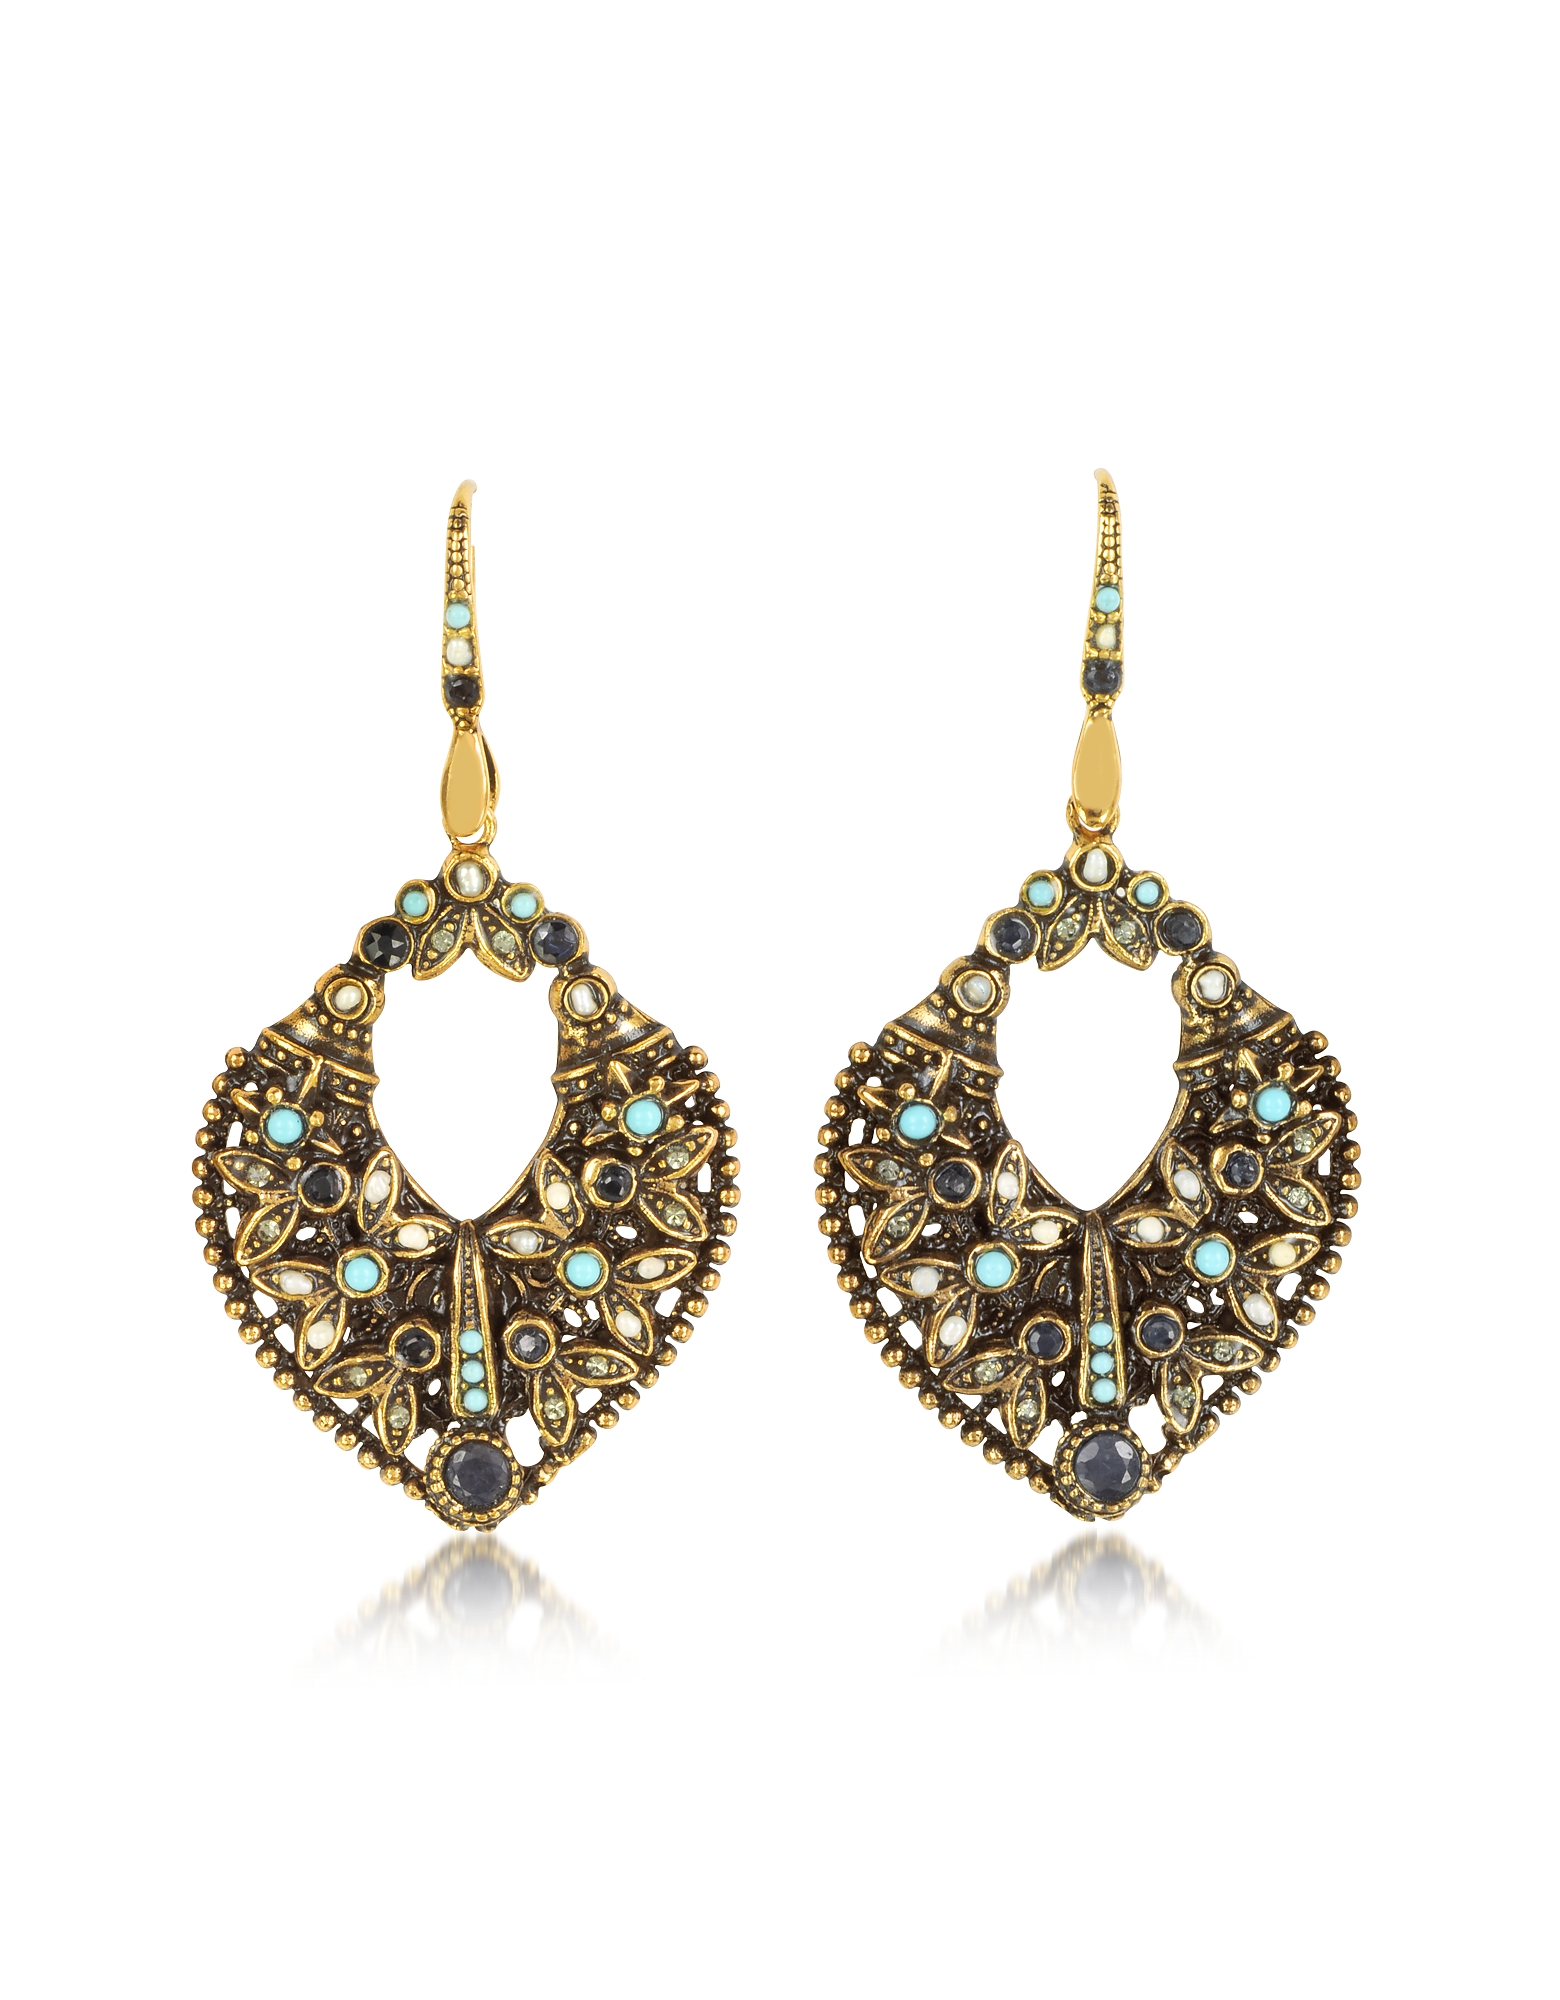 Arabesque Earrings w/Crystals